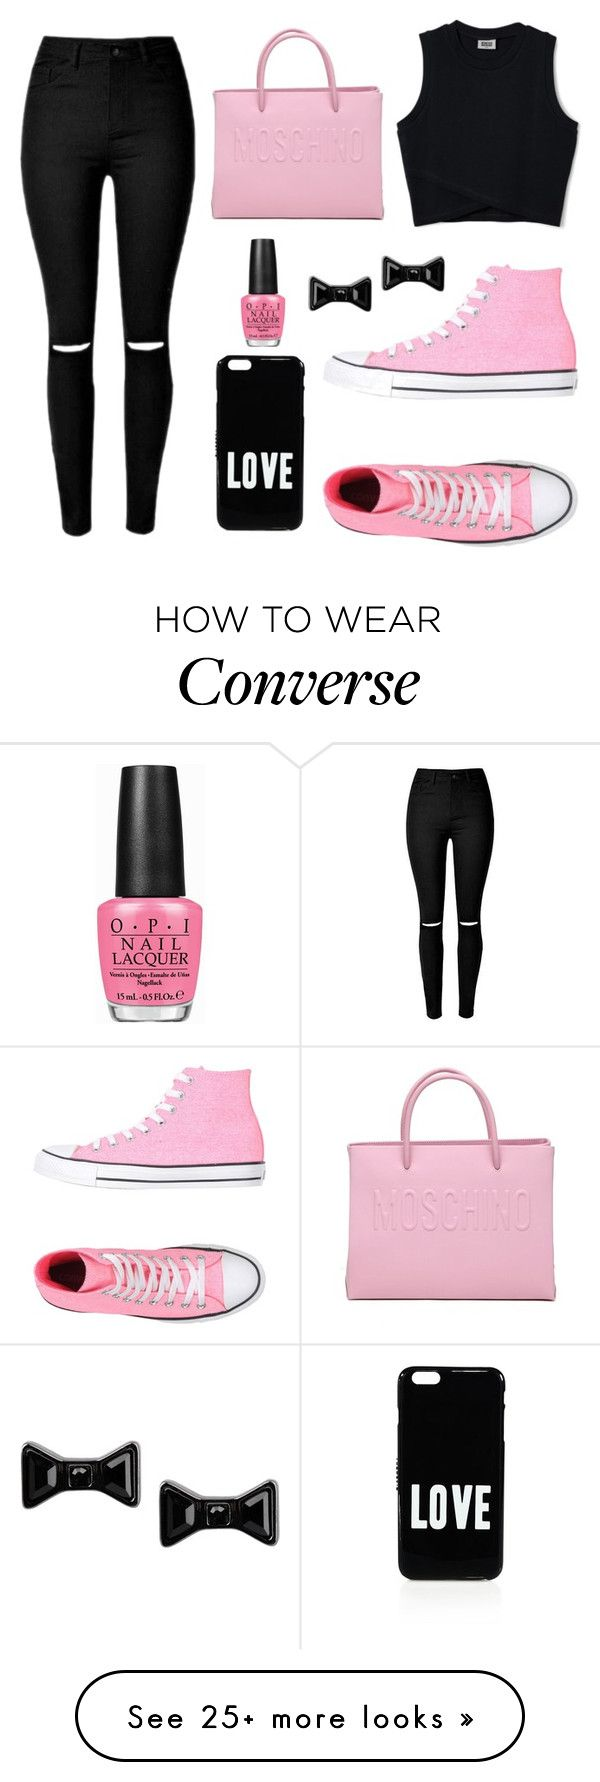 """""""Pink Converse"""" by fashionismybtch on Polyvore featuring Converse, Moschino, Givenchy, Marc by Marc Jacobs and OPI"""